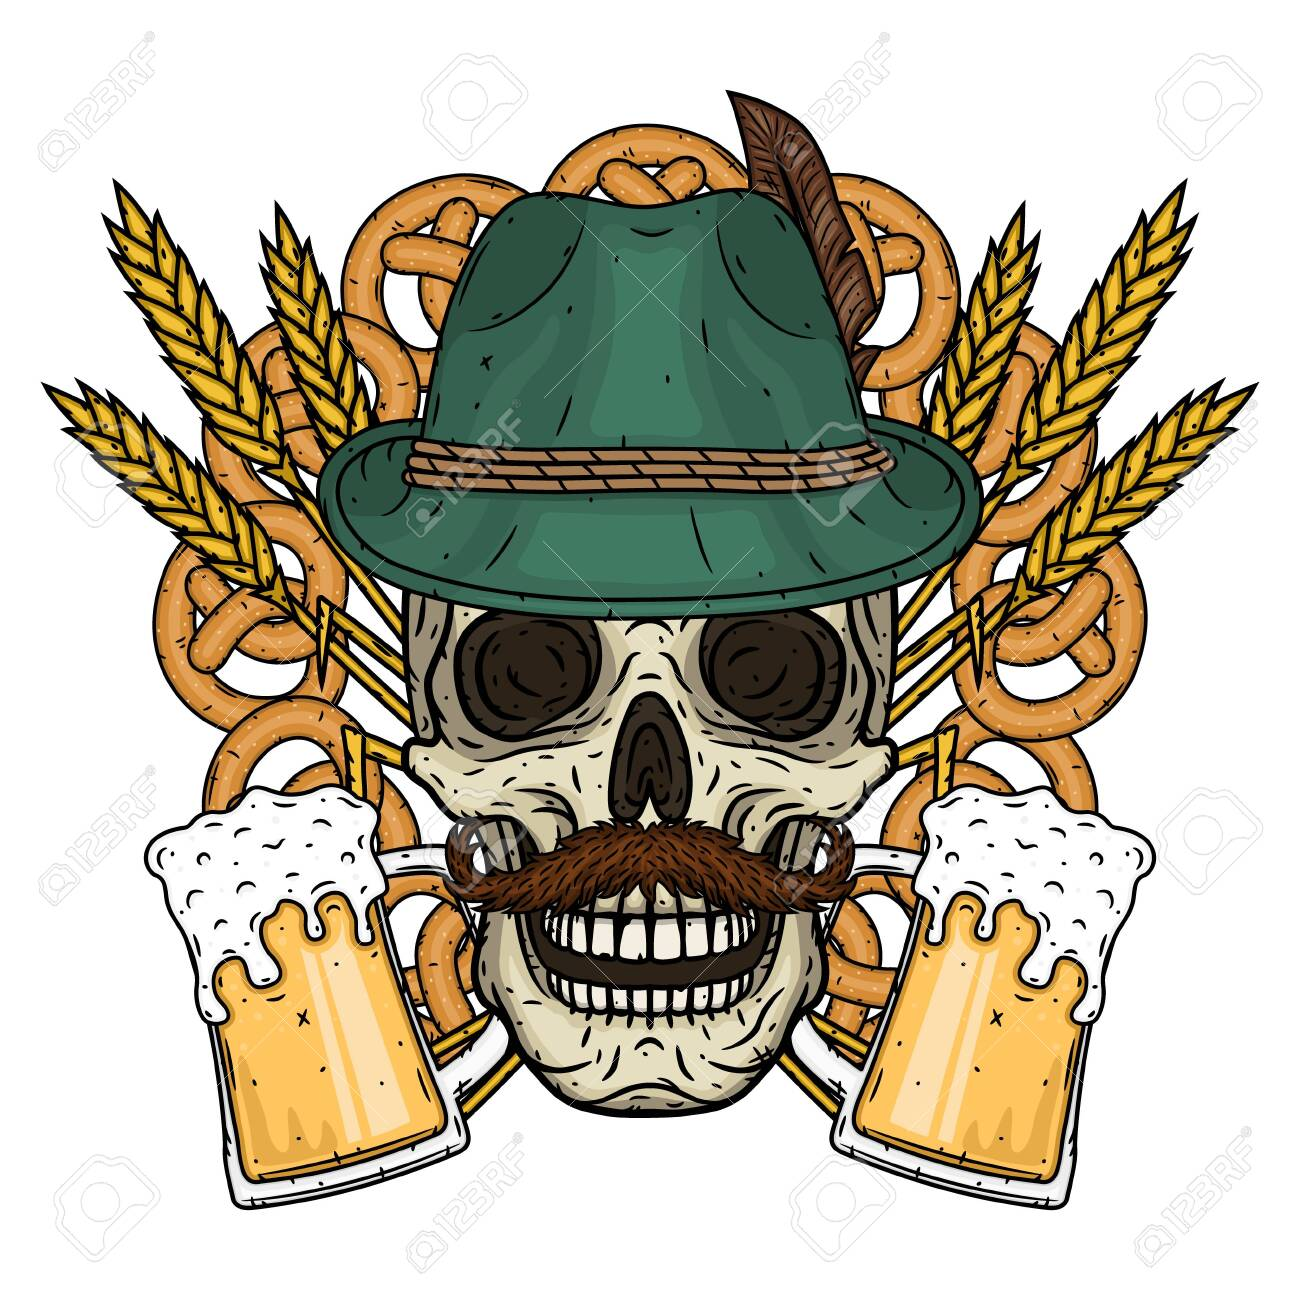 Illustration for oktoberfest. Skull in Tyrolean hat, with ears of wheat and glass of beer. - 136126394